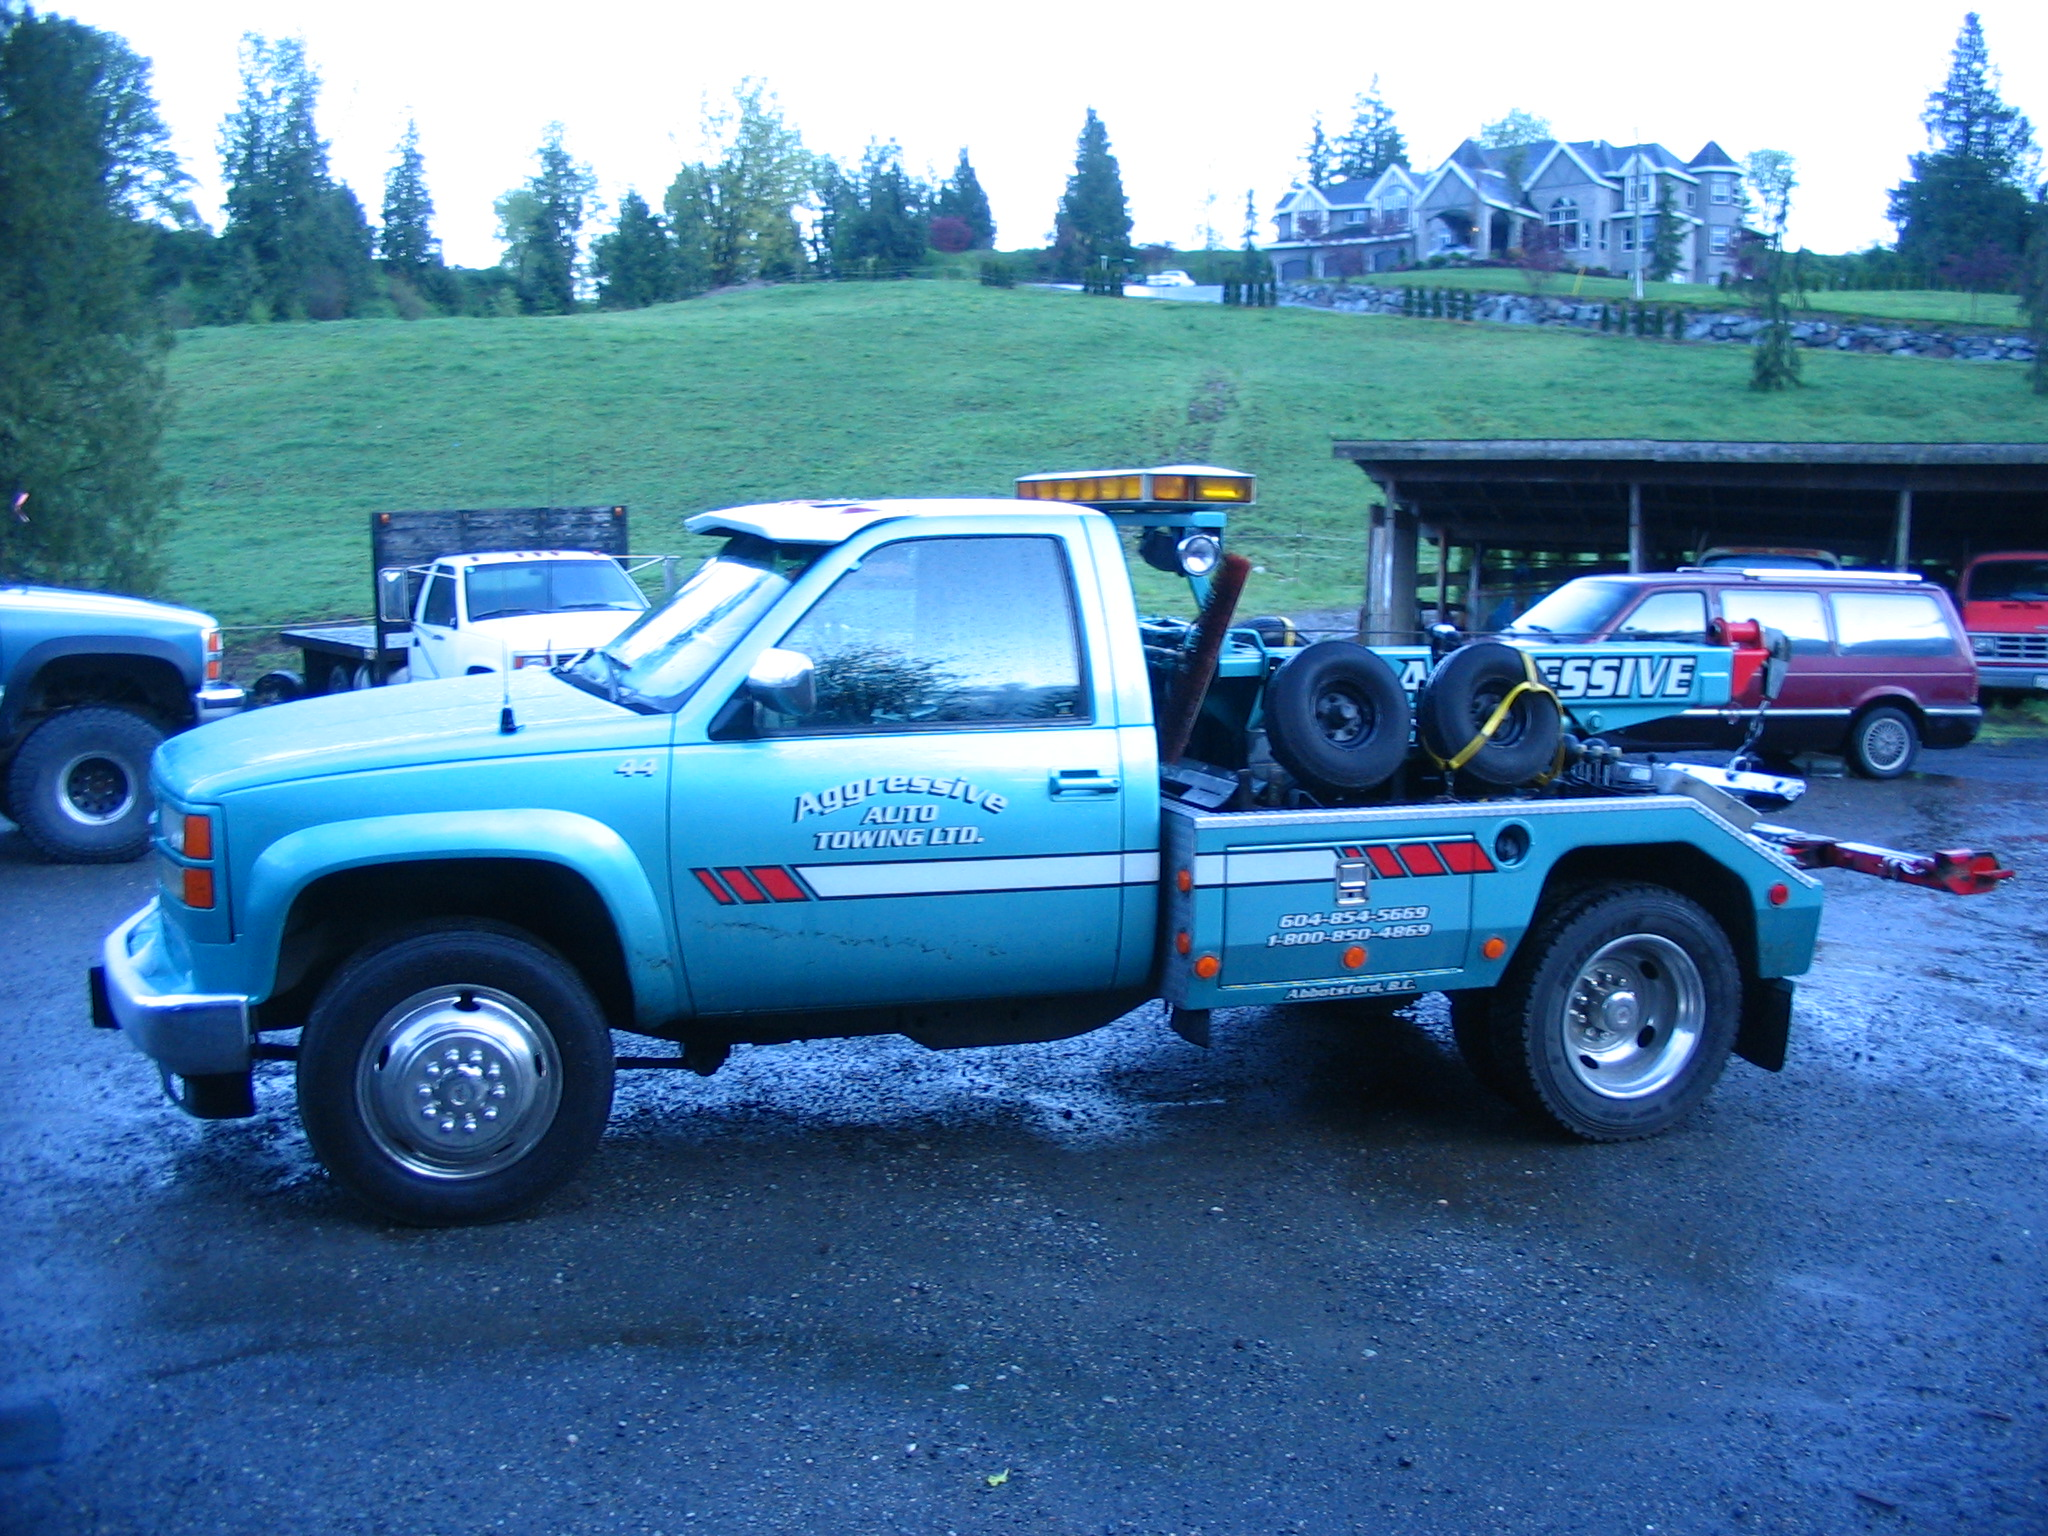 Aggressive Auto Towing Ltd. - Abbotsfords Source for Towing